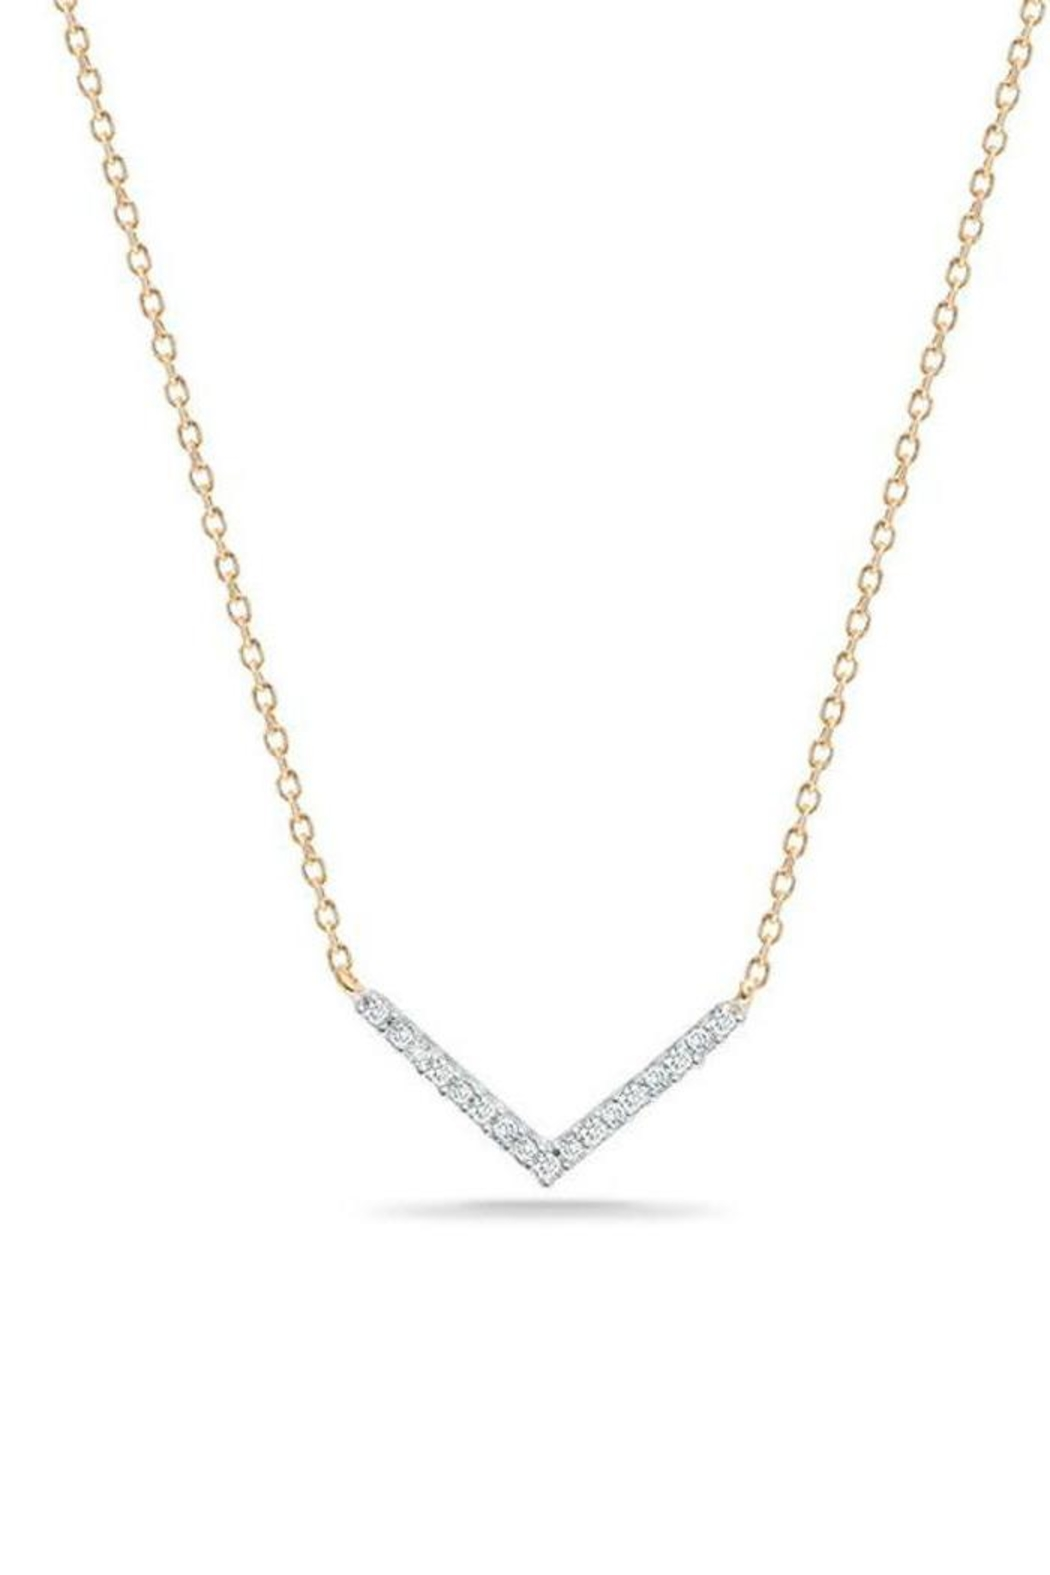 Adina Reyter Tiny Pave V-Necklace - Main Image